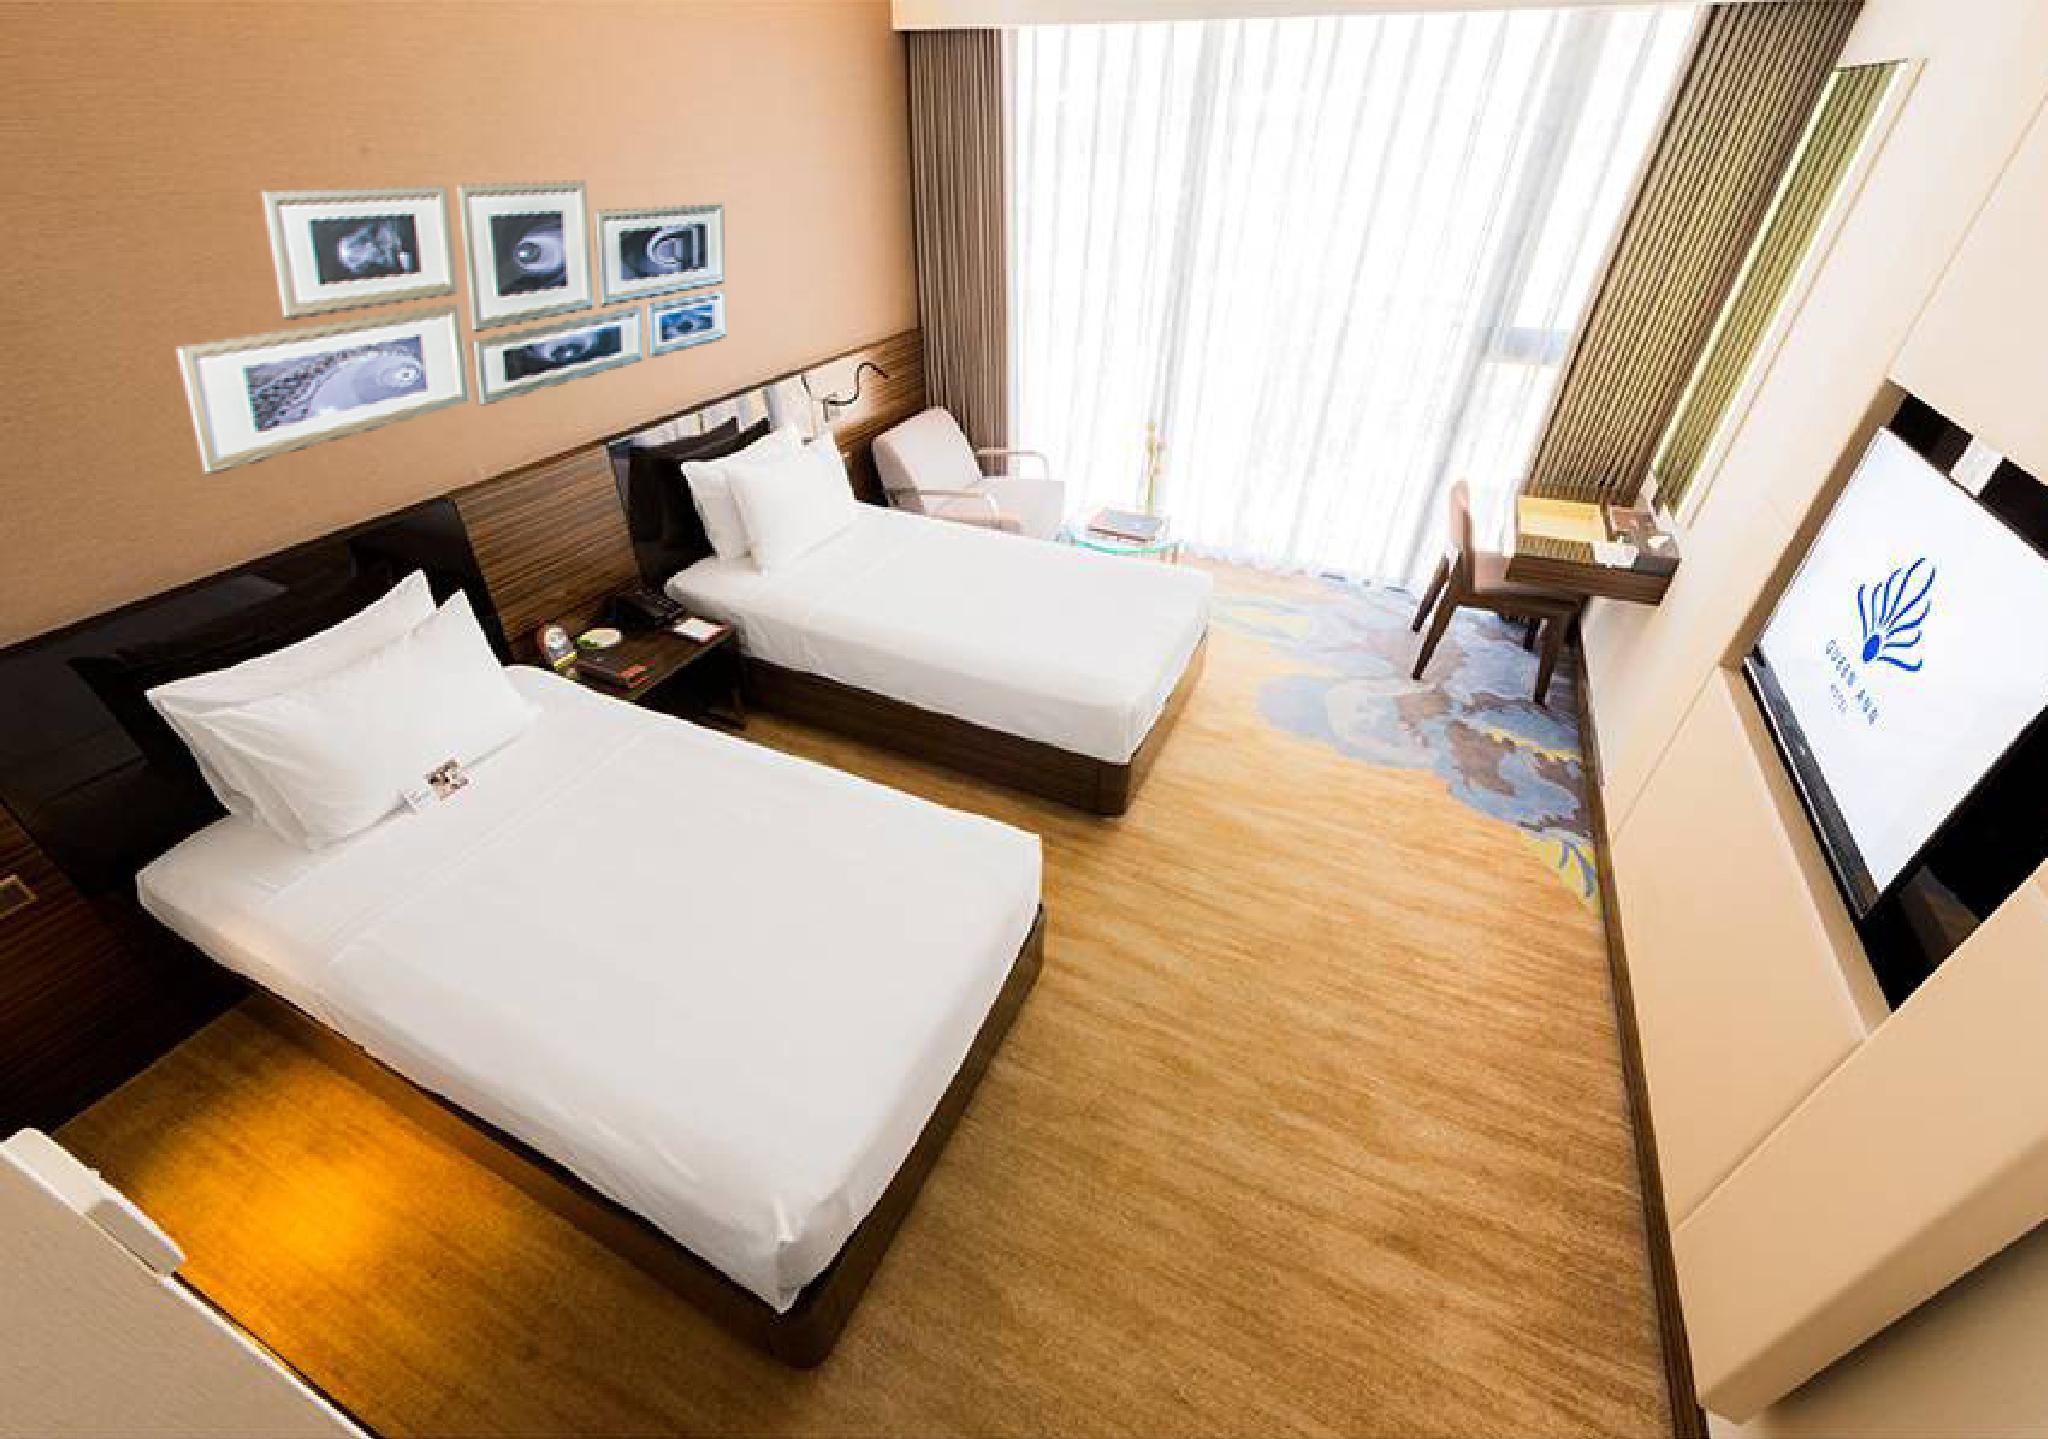 Grand Deluxe Ocean View Room with 1 King Bed or 2 Single Beds